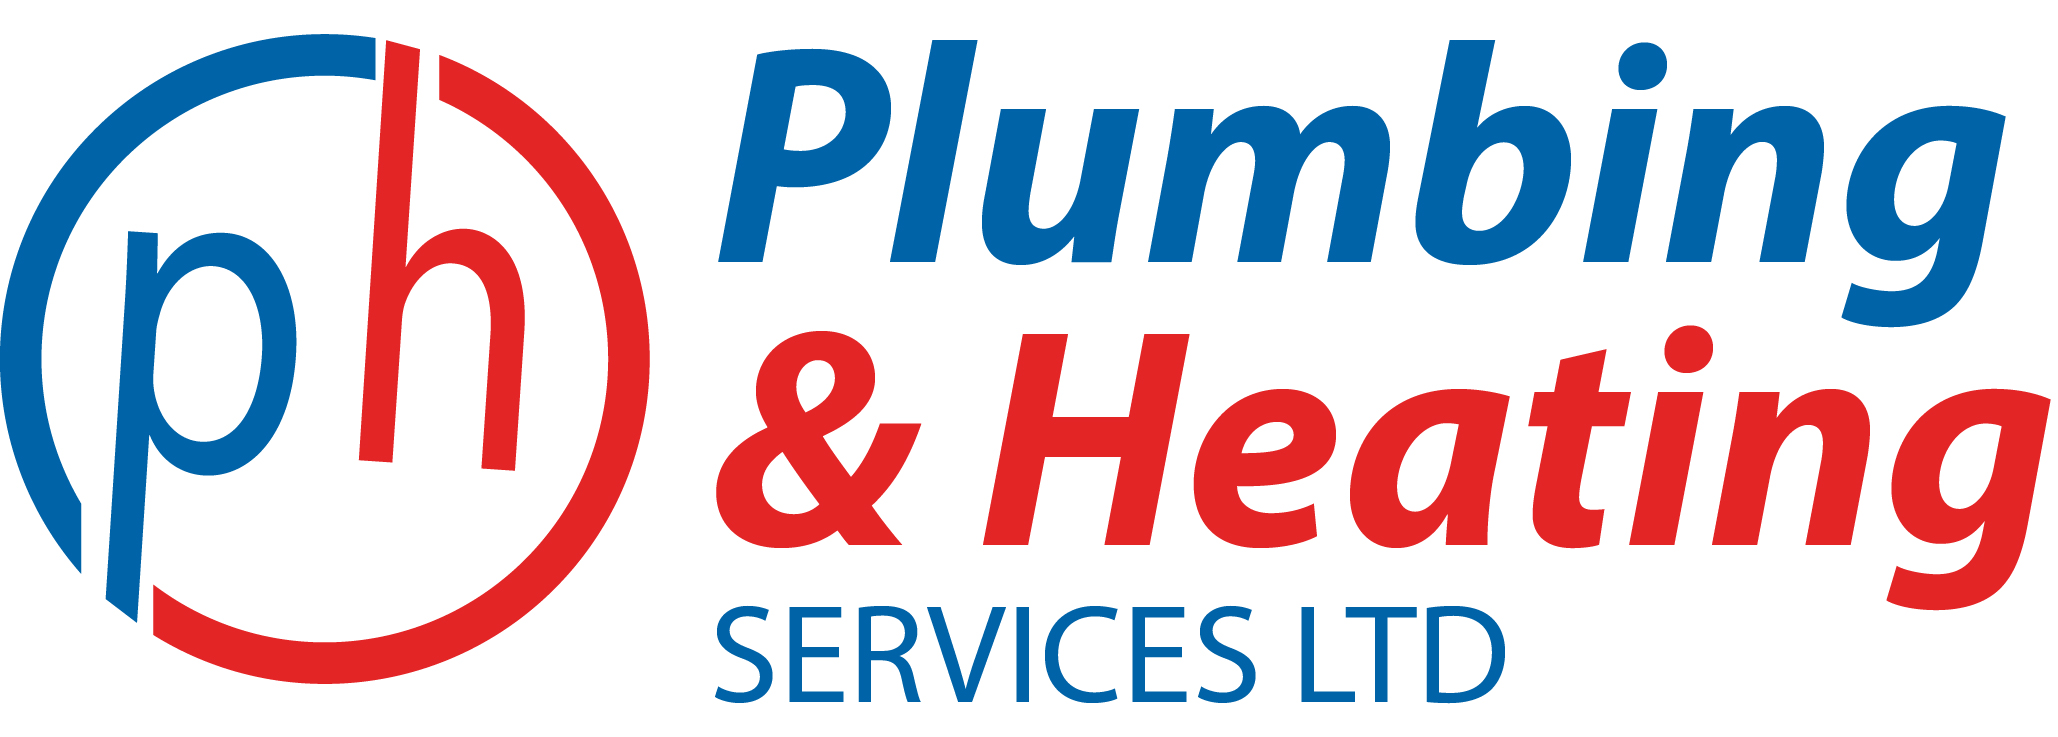 Ph plumbing & heating services ltd Verified Logo